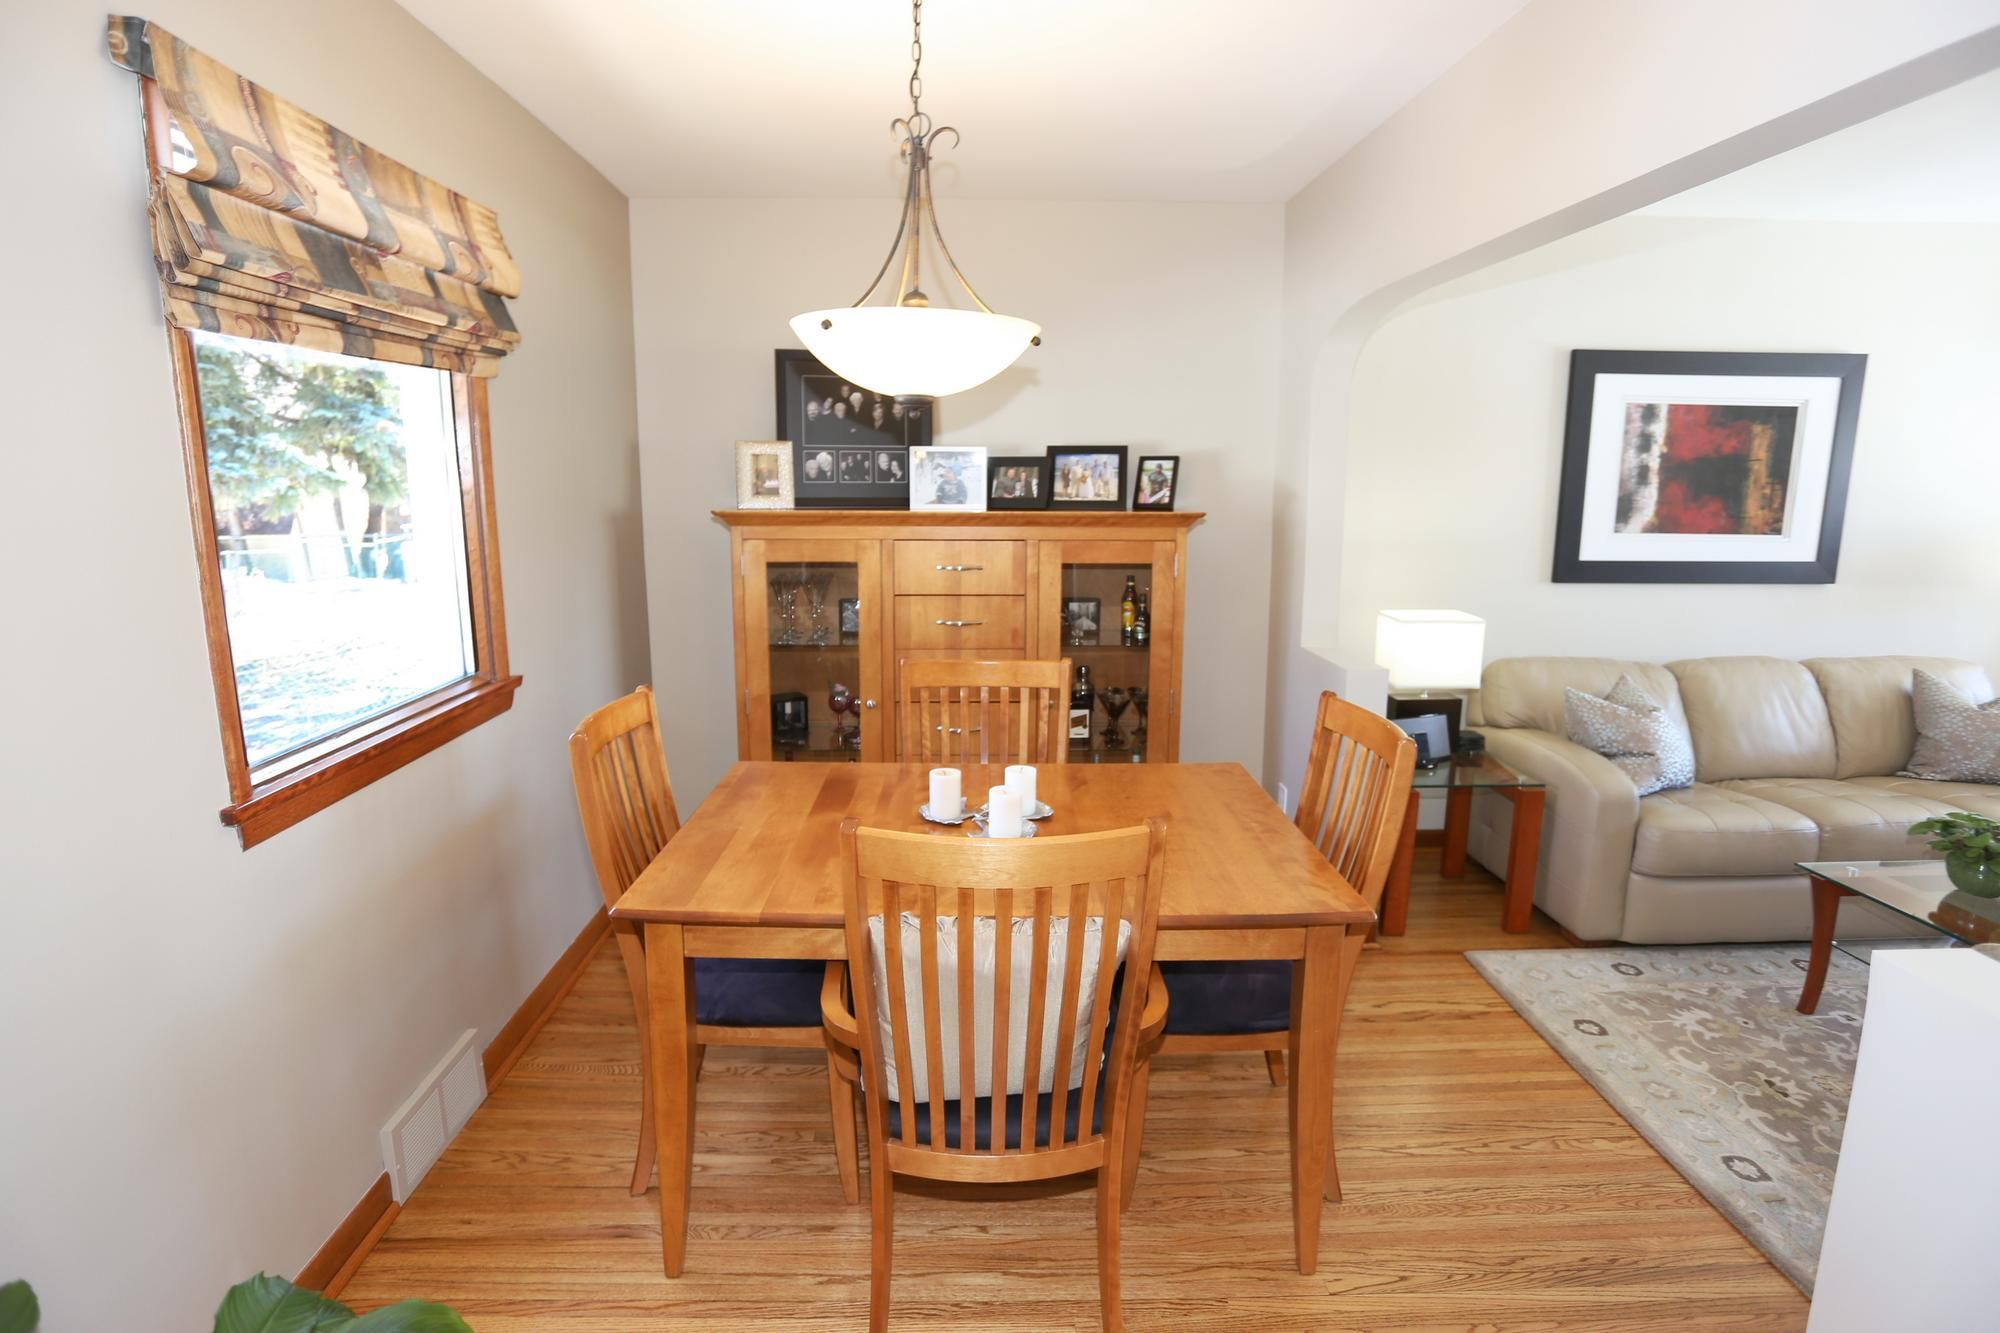 Photo 7: Photos: 349 Guildford Street in Winnipeg: St James Single Family Detached for sale (5E)  : MLS®# 1807654